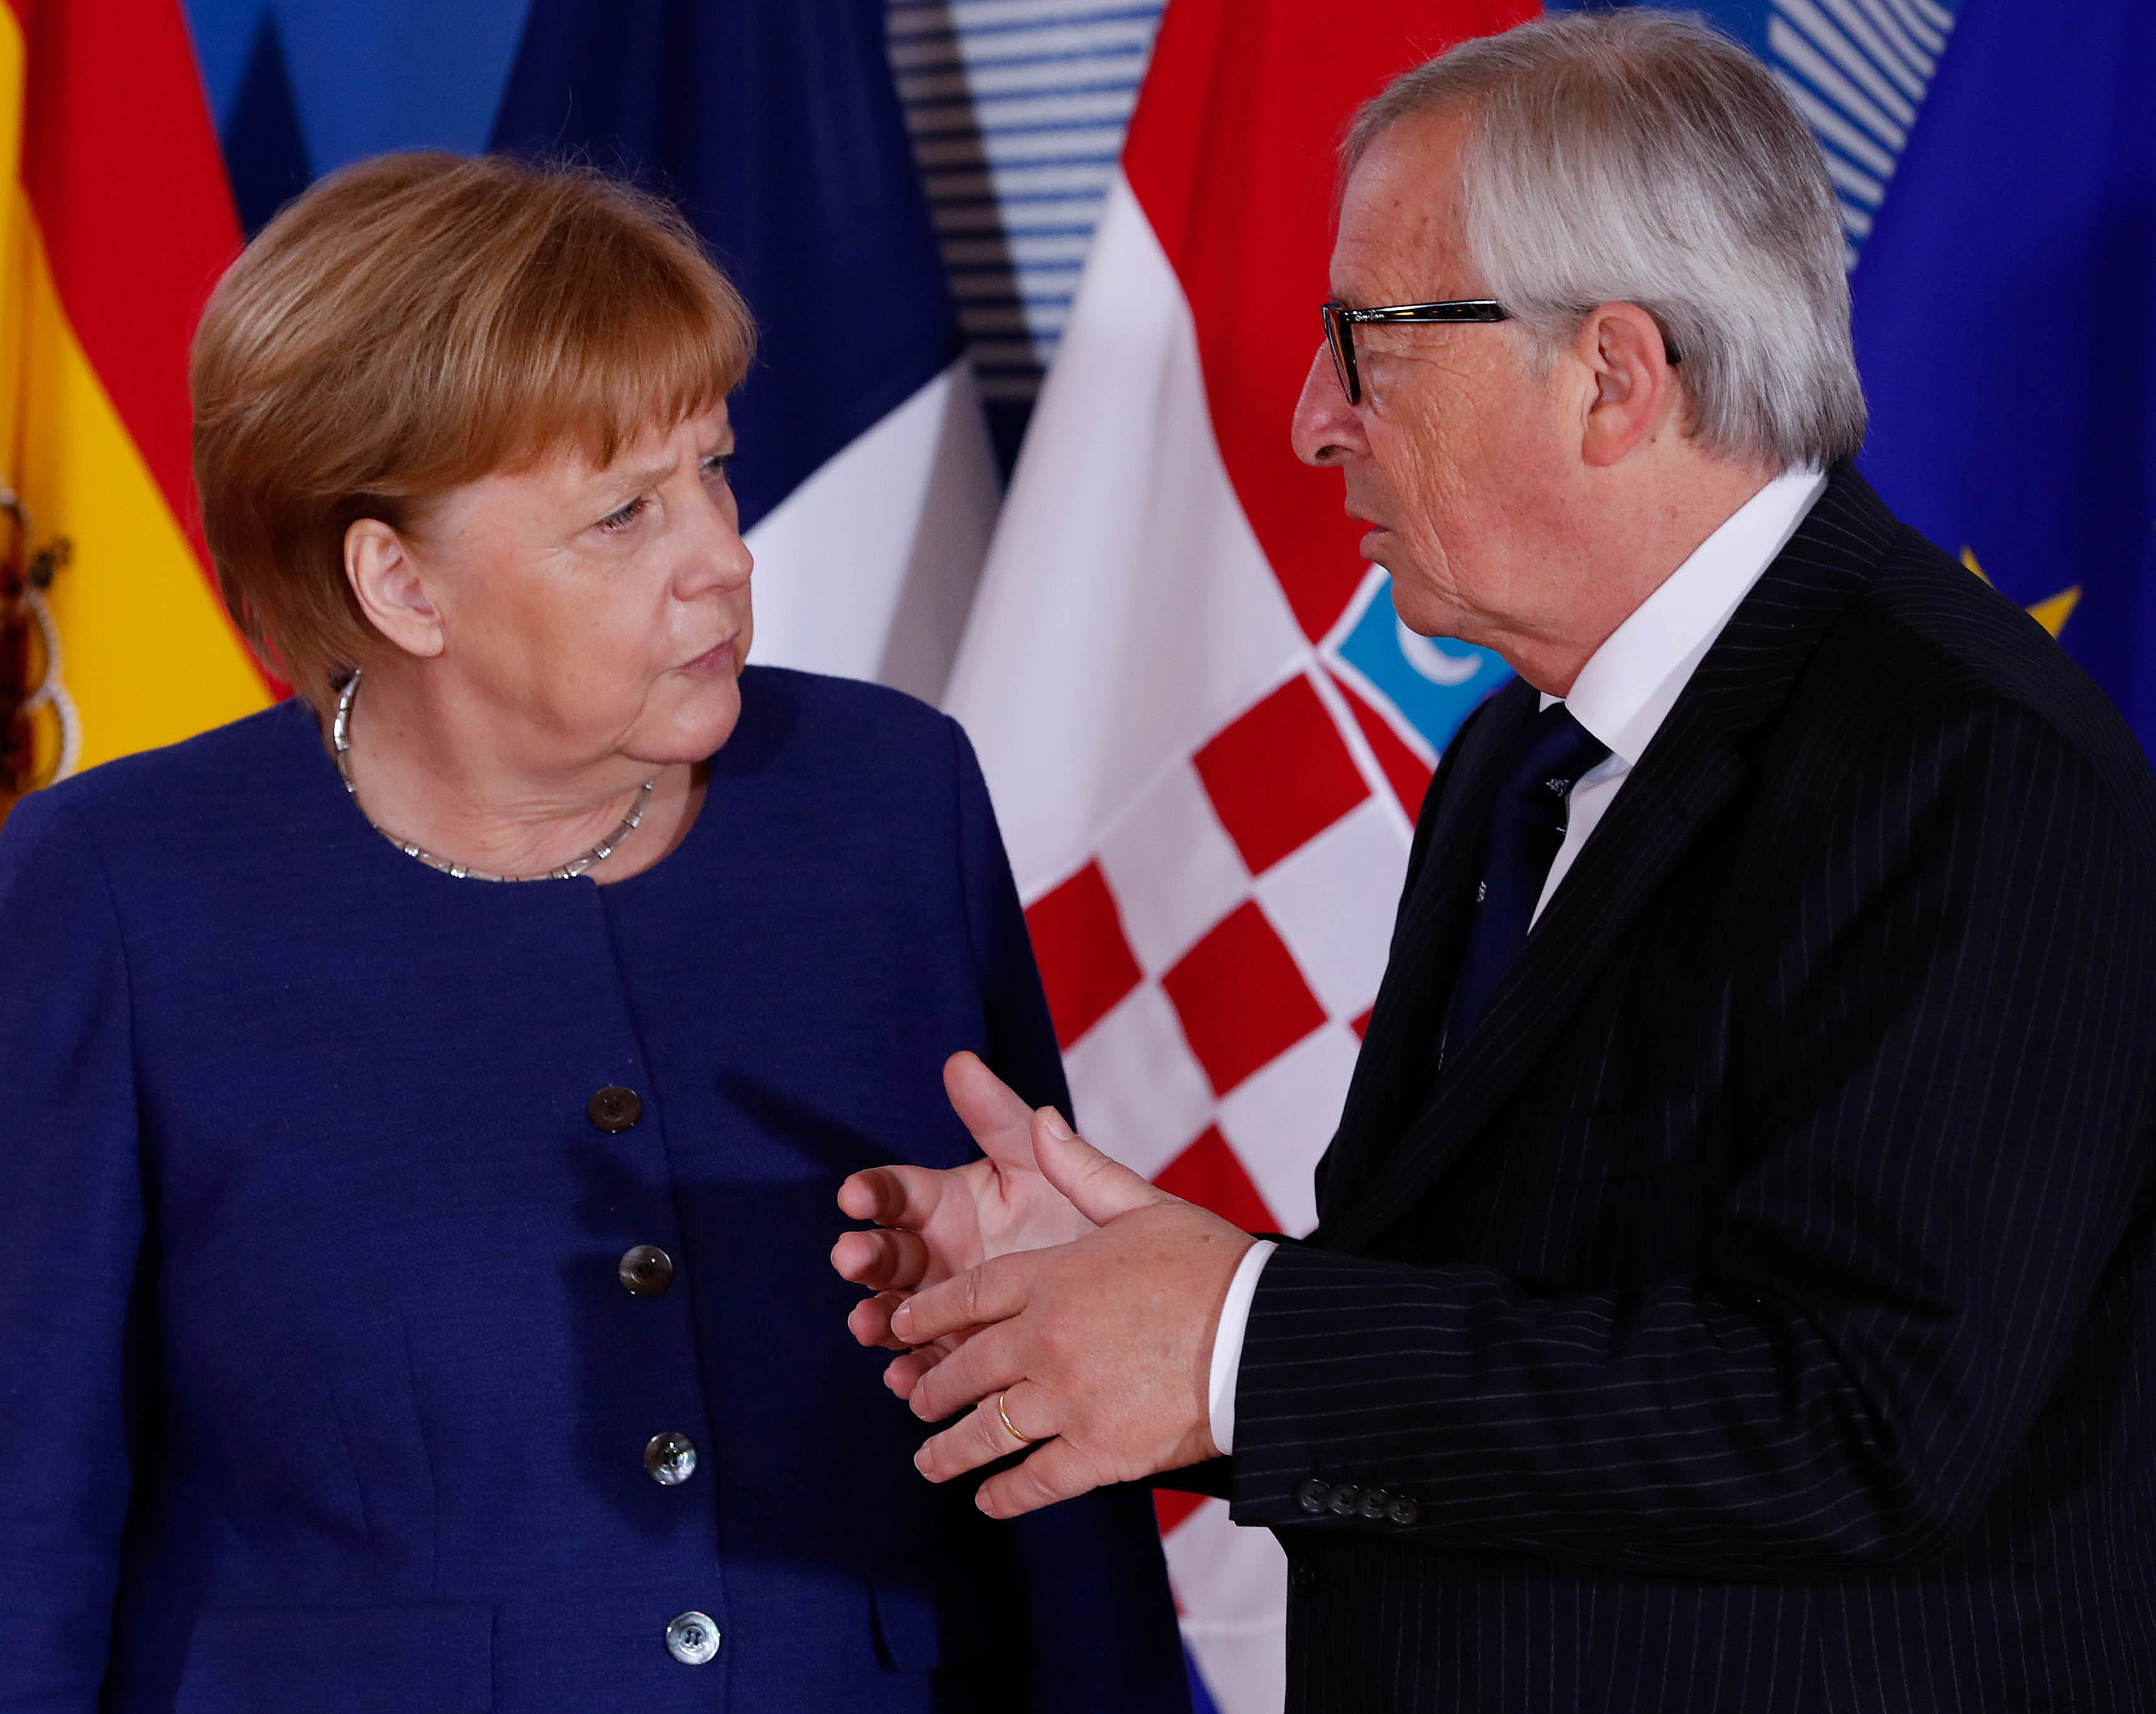 German Chancellor Angela Merkel is welcomed by EU President Jean-Claude Juncker at the start of an emergency European Union leaders summit on immigration at the EU Commission headquarters in Brussels, Belgium, June 24, 2018.